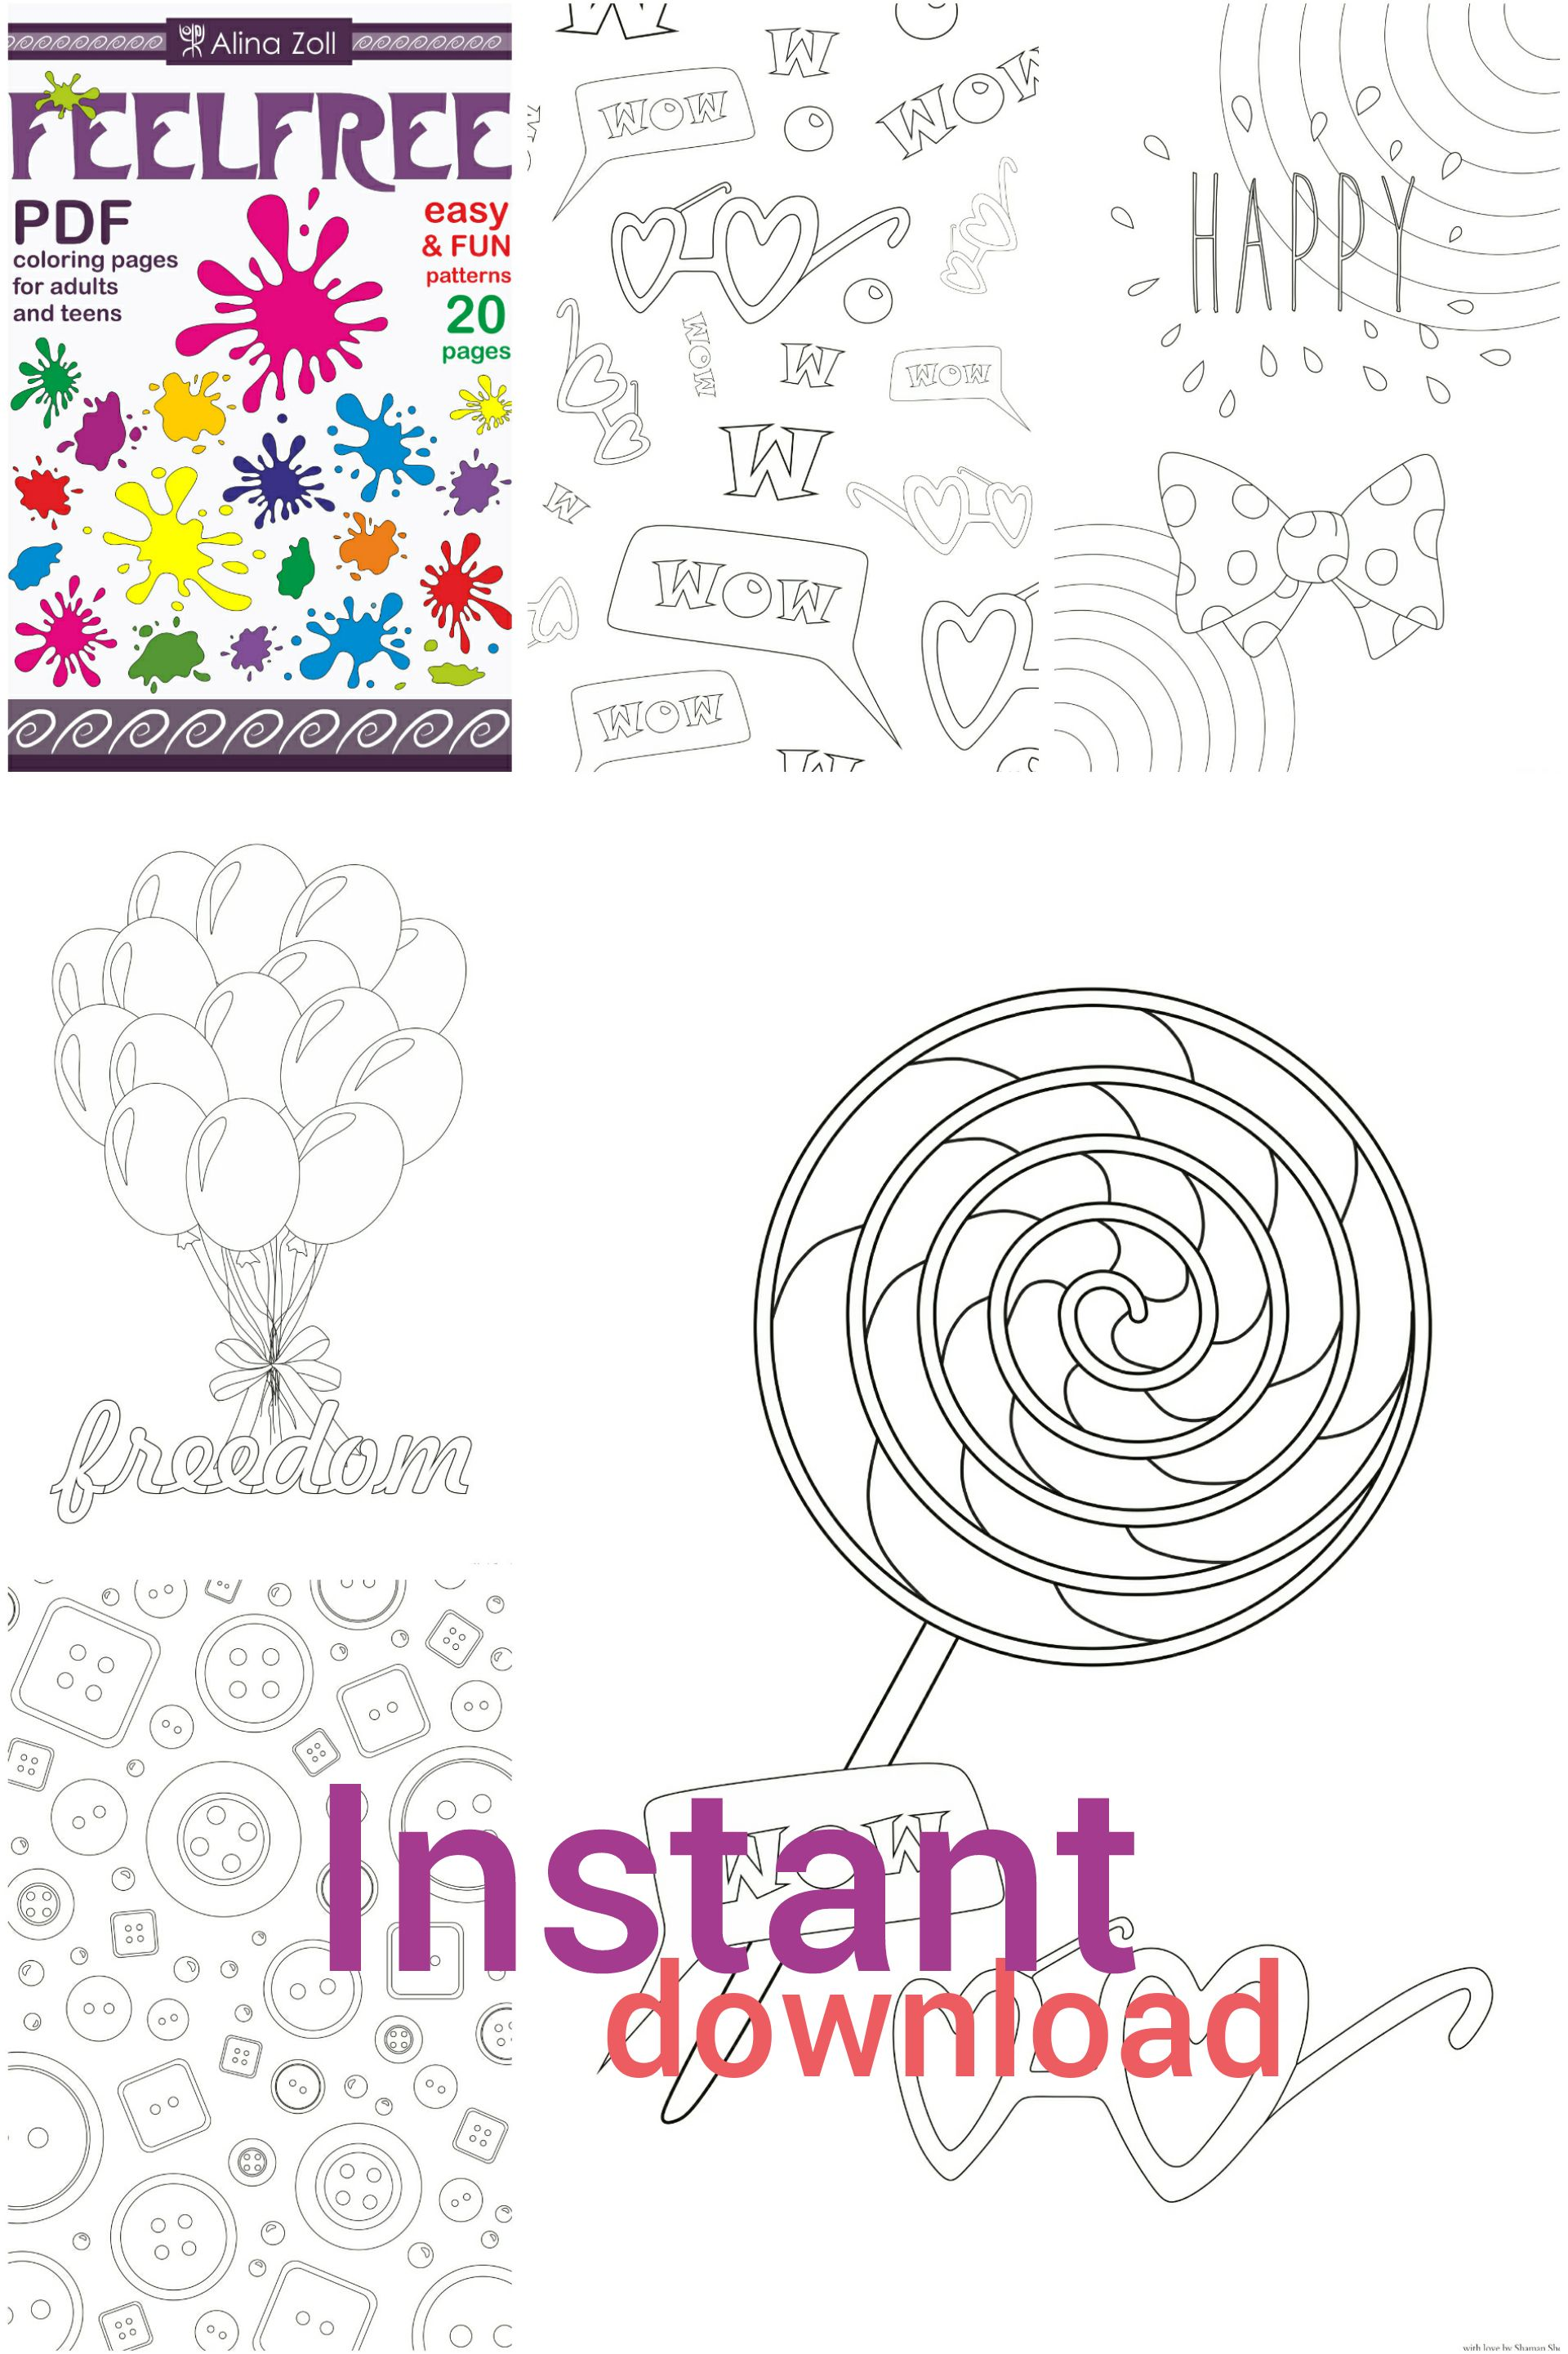 880 Top Simple Coloring Pages For Adults Pdf For Free